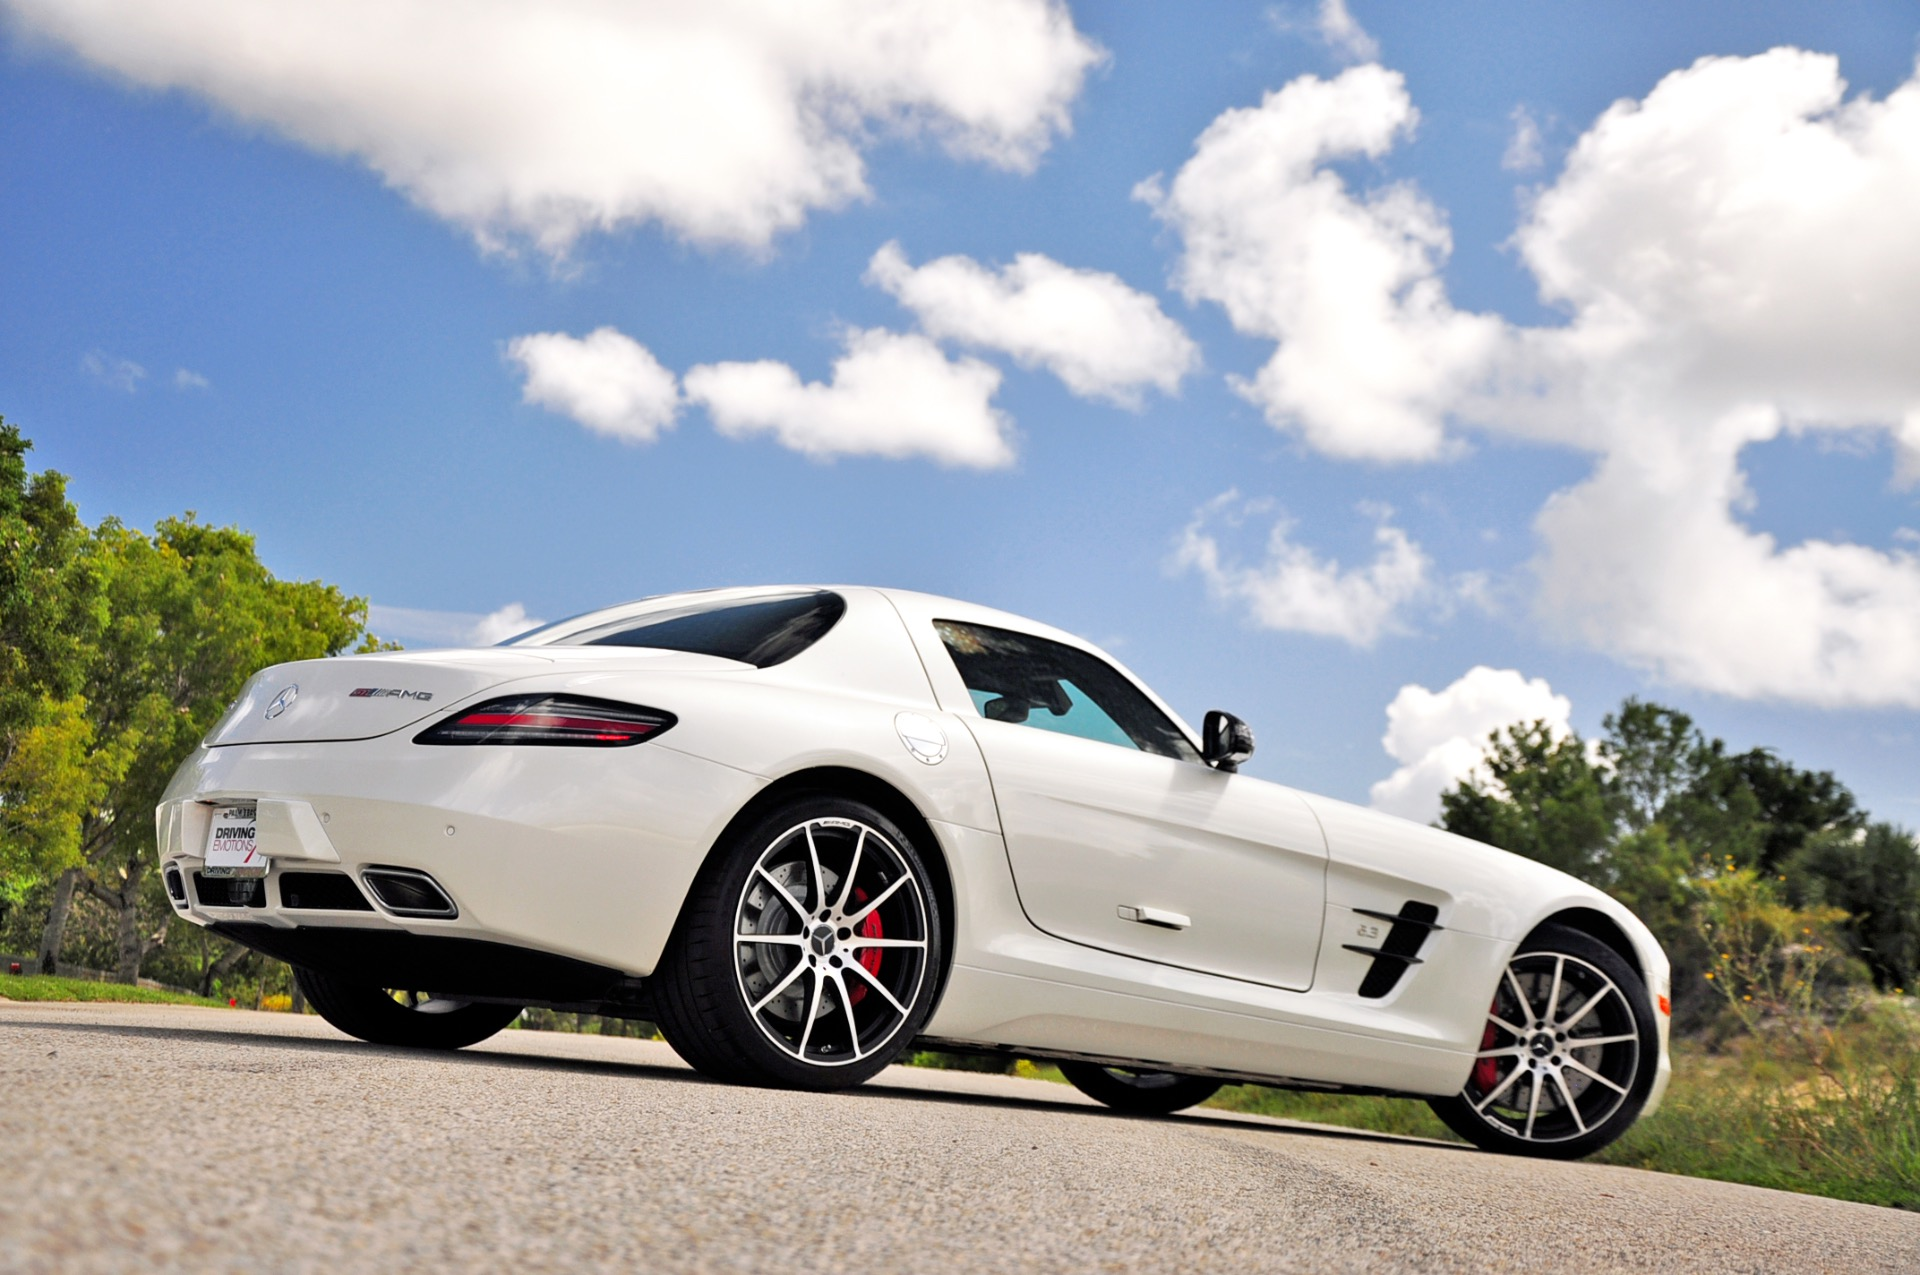 2013 mercedes benz sls amg gt gullwing coupe stock 5902 for Mercedes benz sls amg convertible for sale